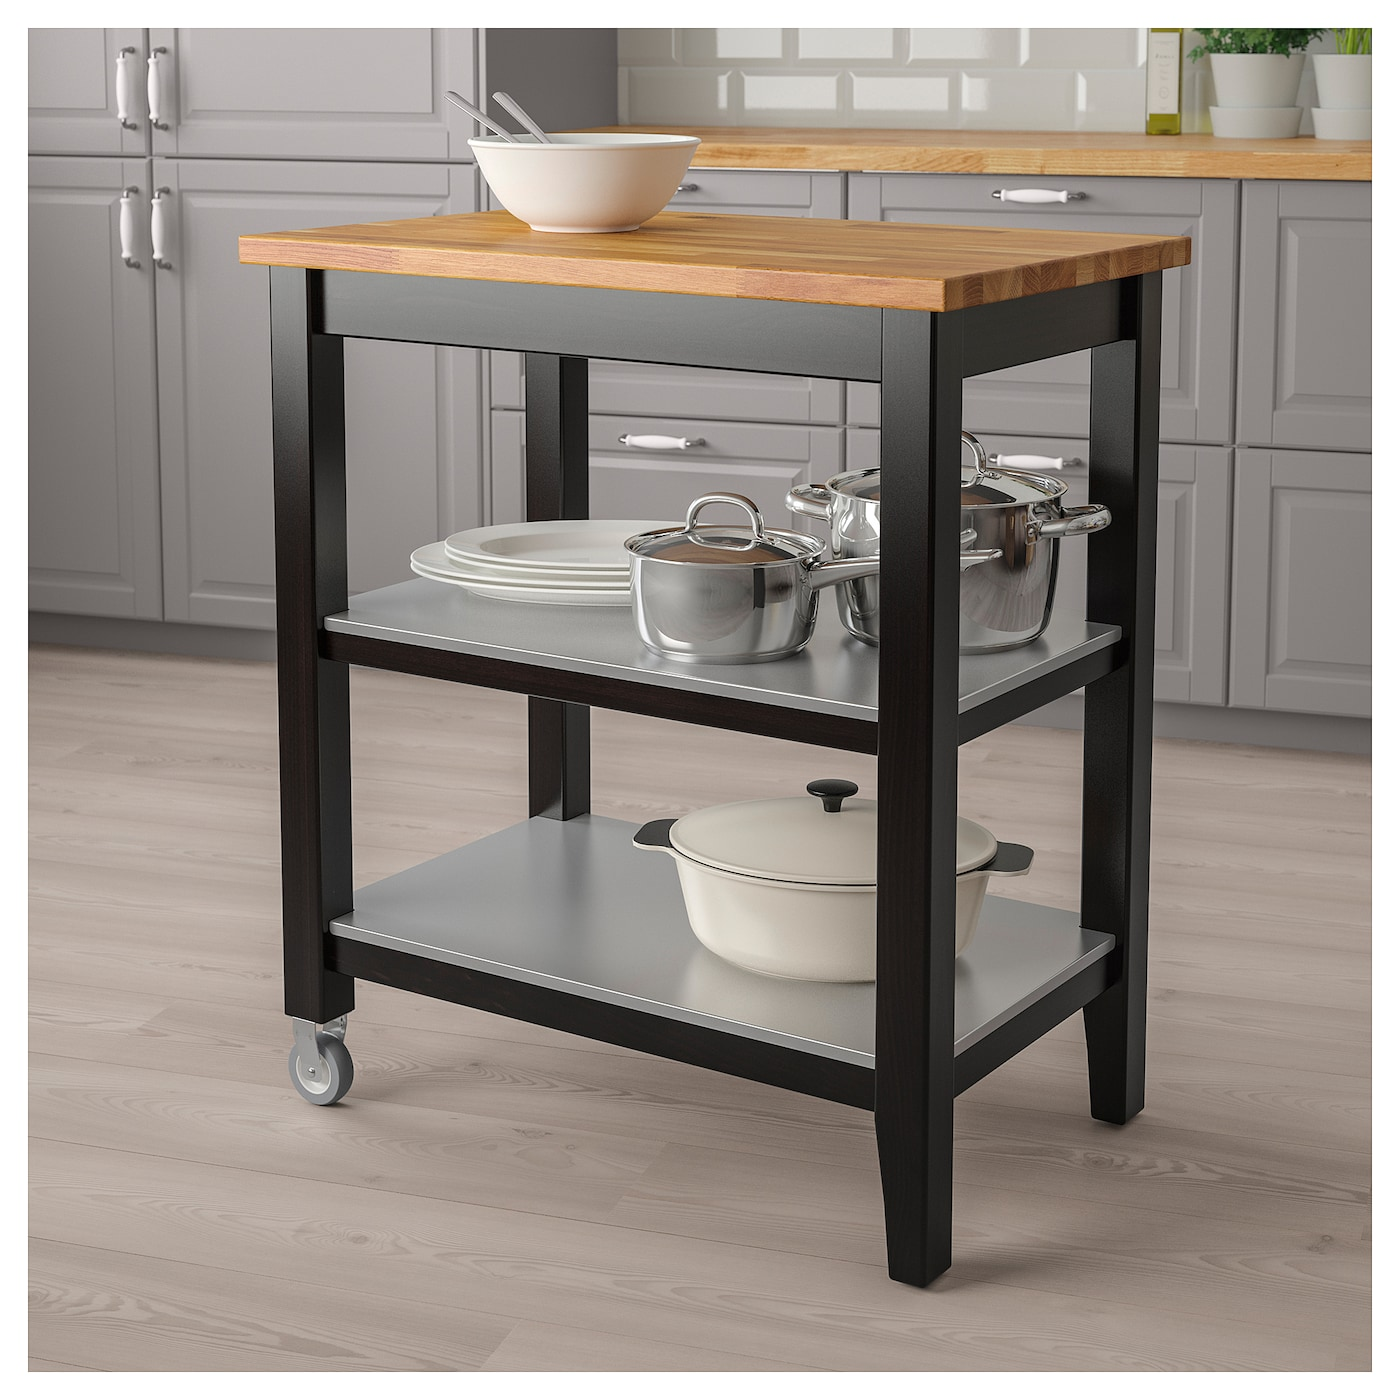 Ikea Kitchen Islands And Trolleys